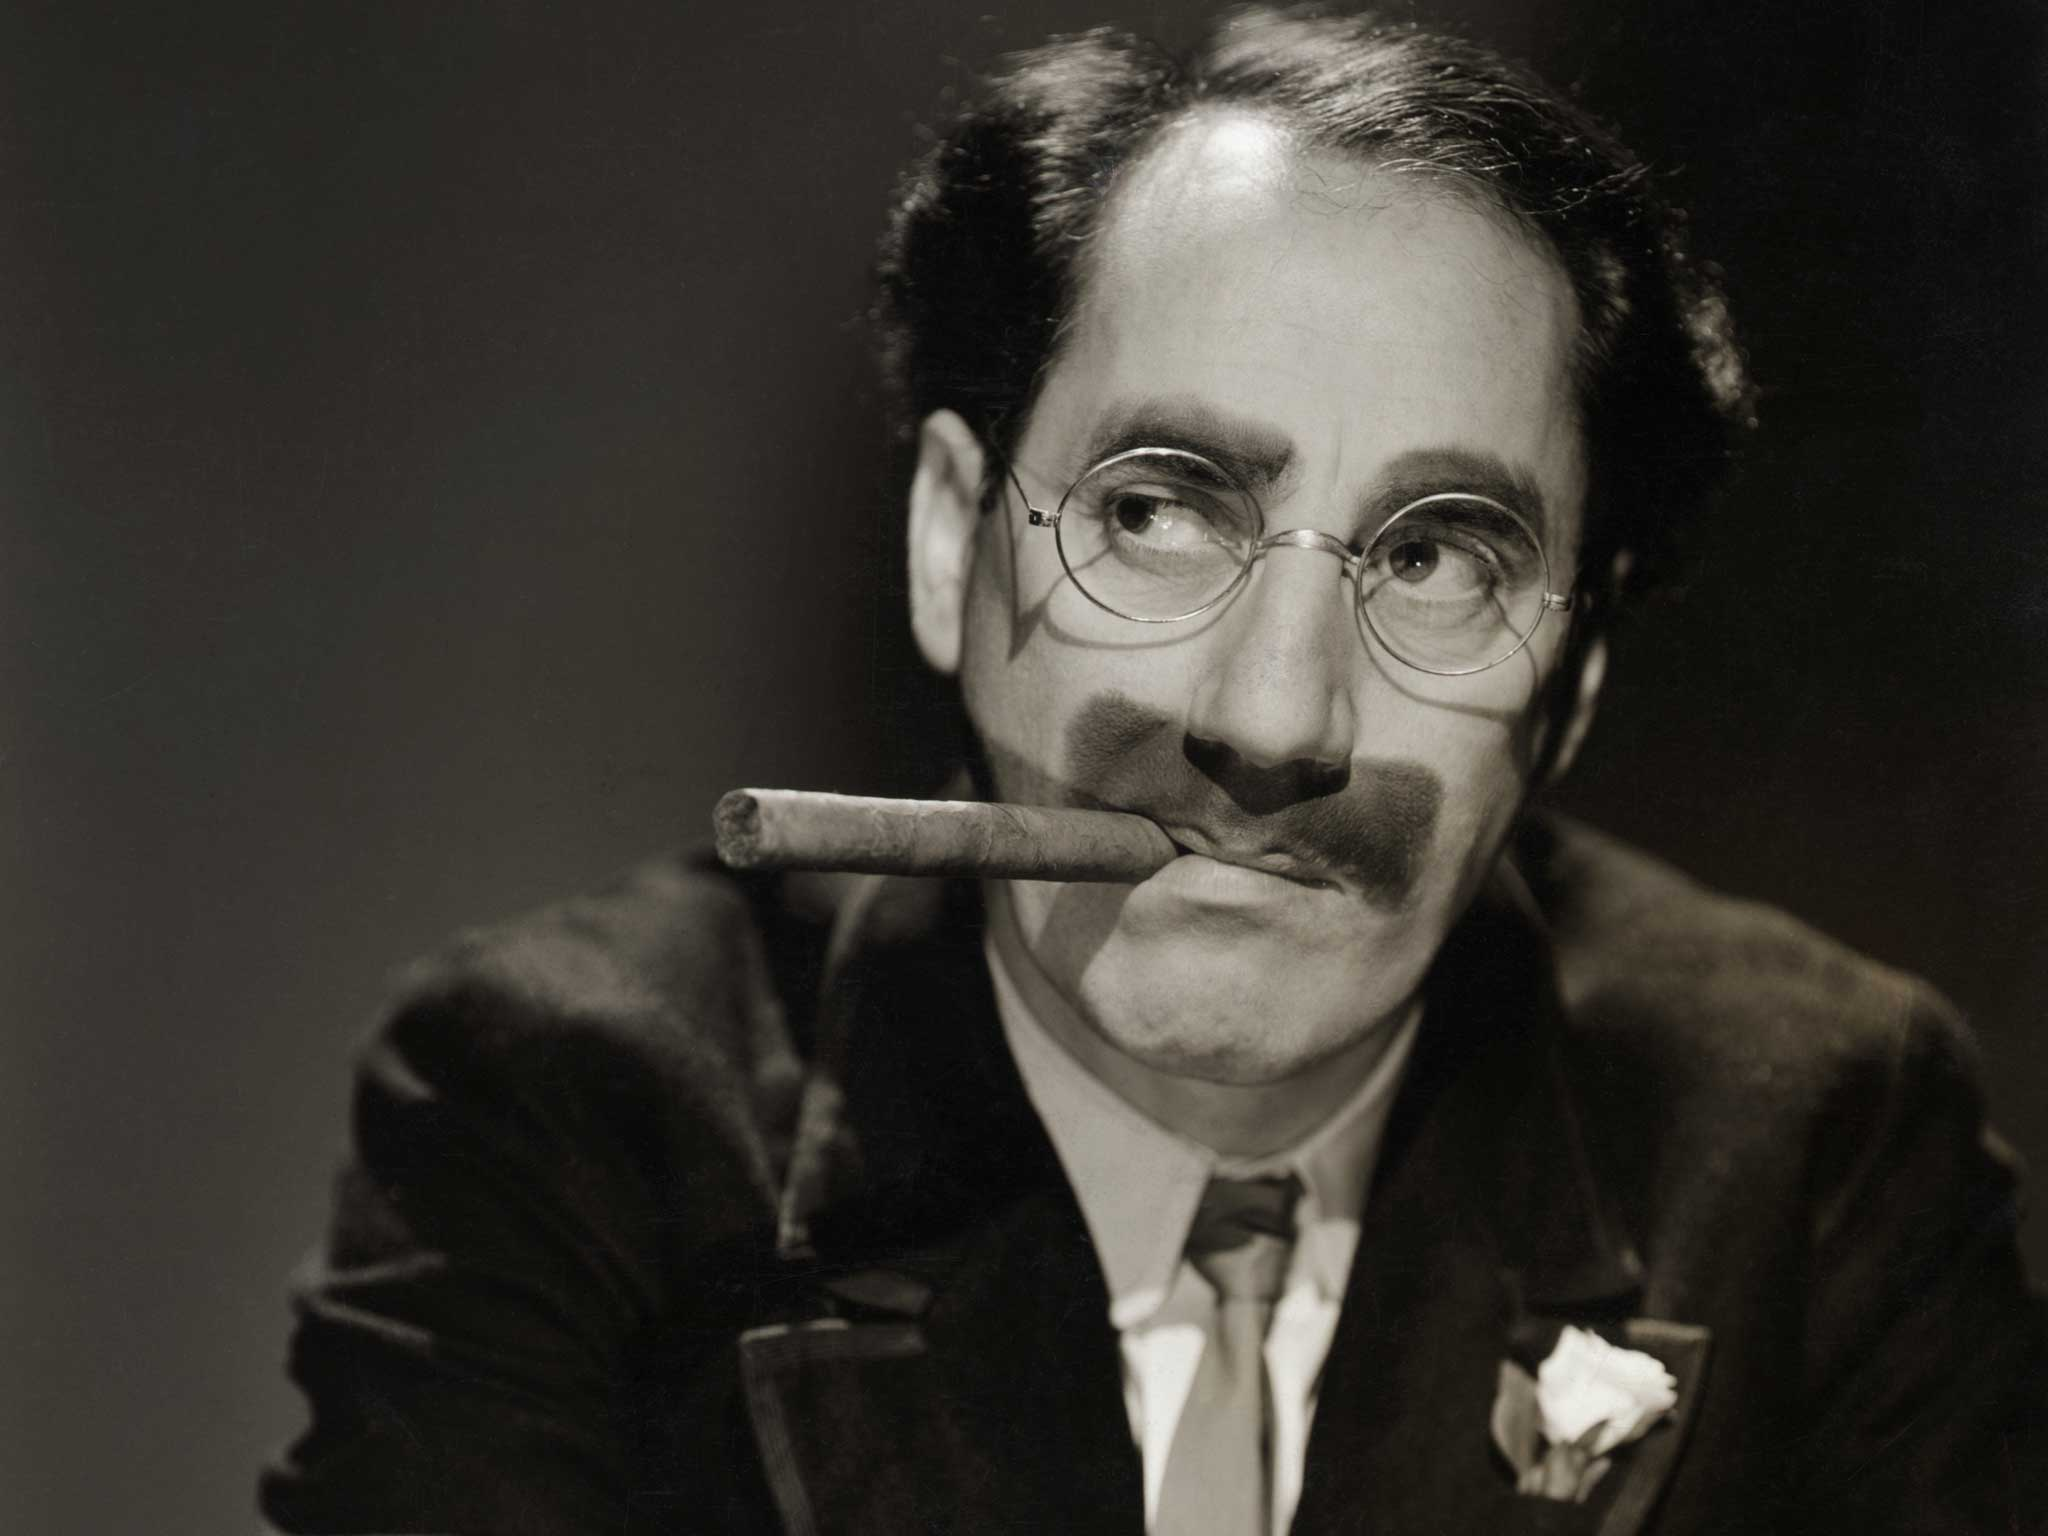 2048x1536 - Groucho Marx Wallpapers 13